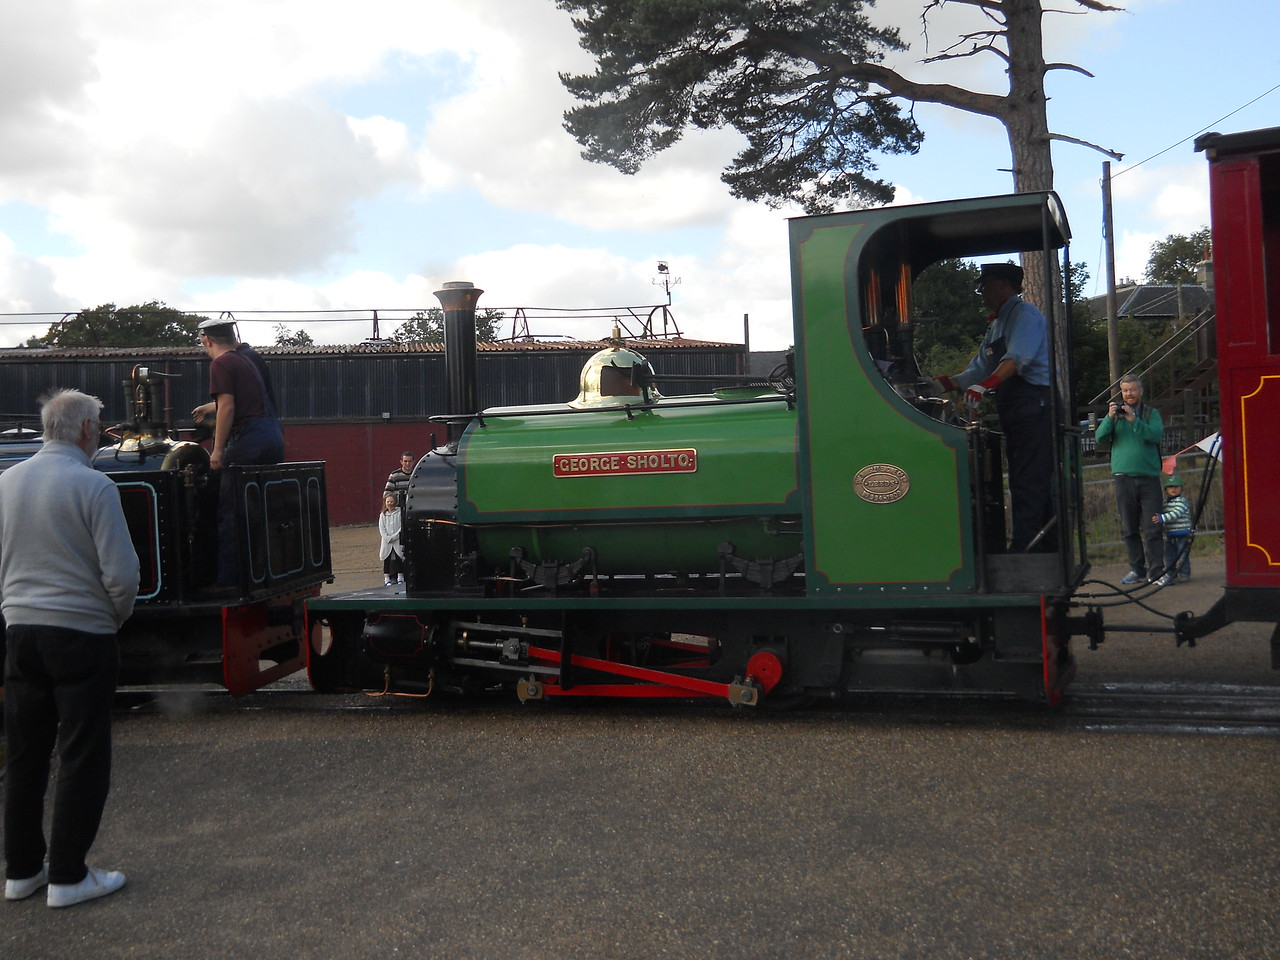 The two Sholtos set off together on the 1.5 mile Nursery Railway round trip.